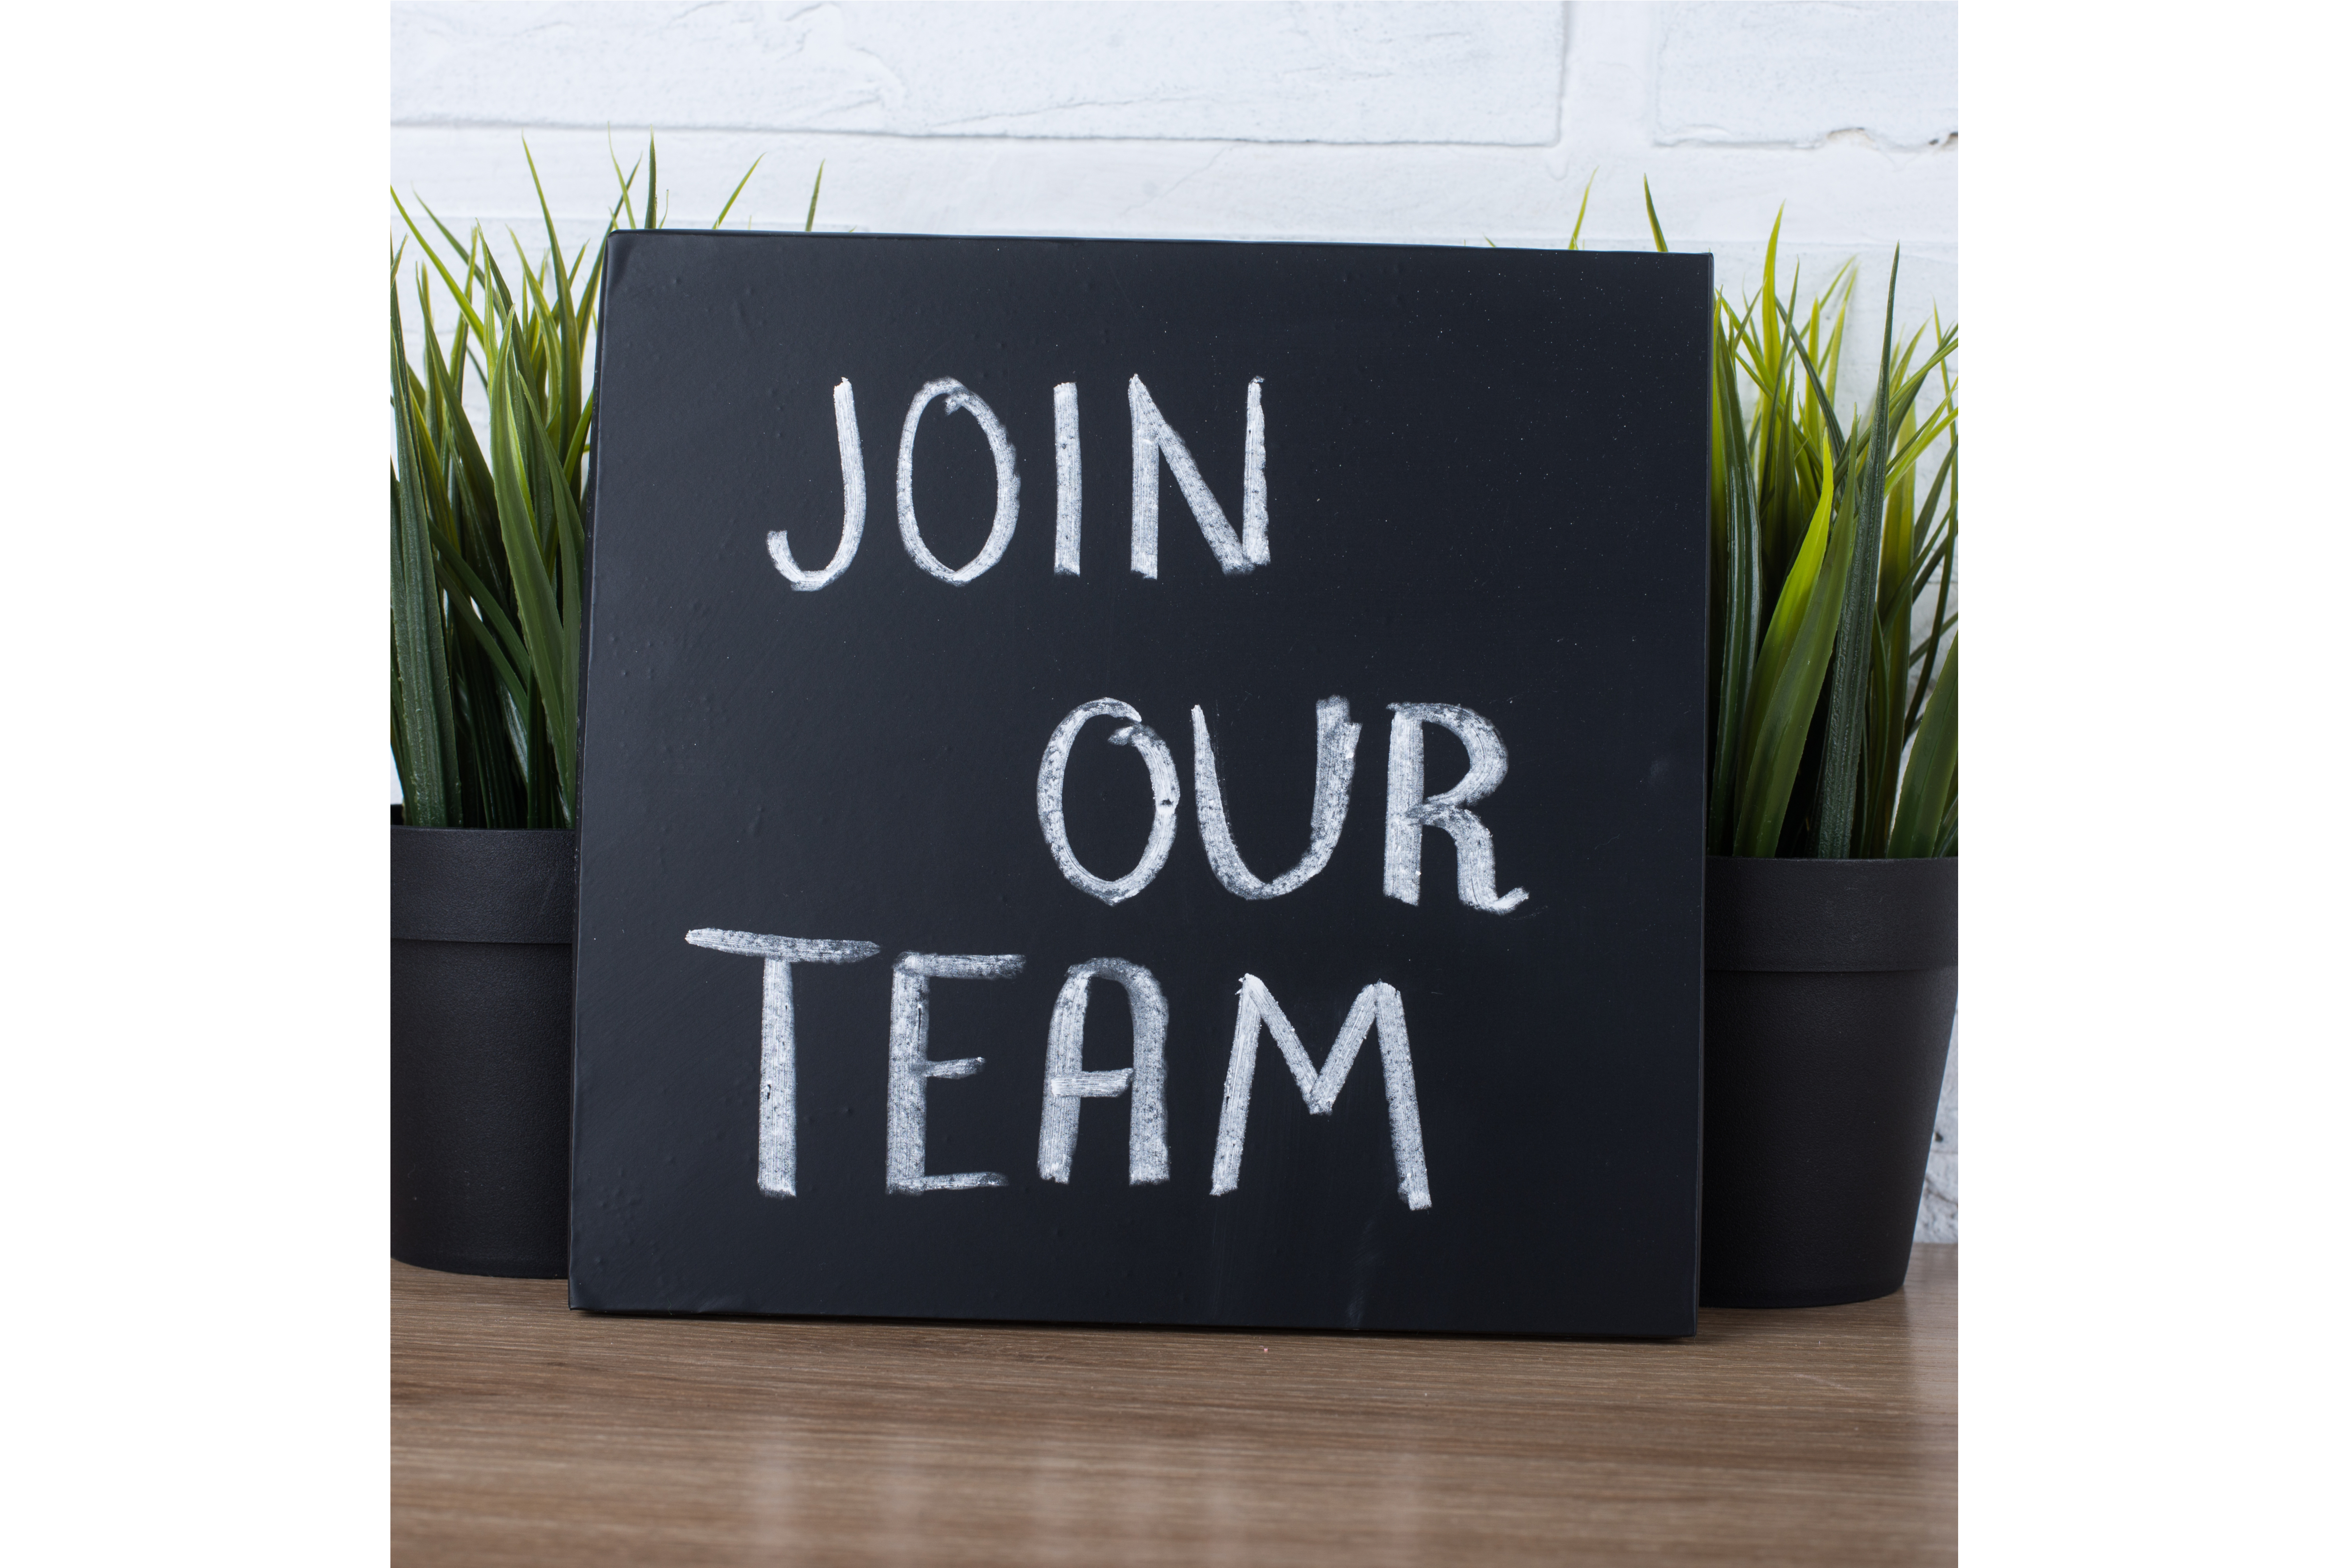 Senior Environmental Consultant Position Available - Northeastern Indiana